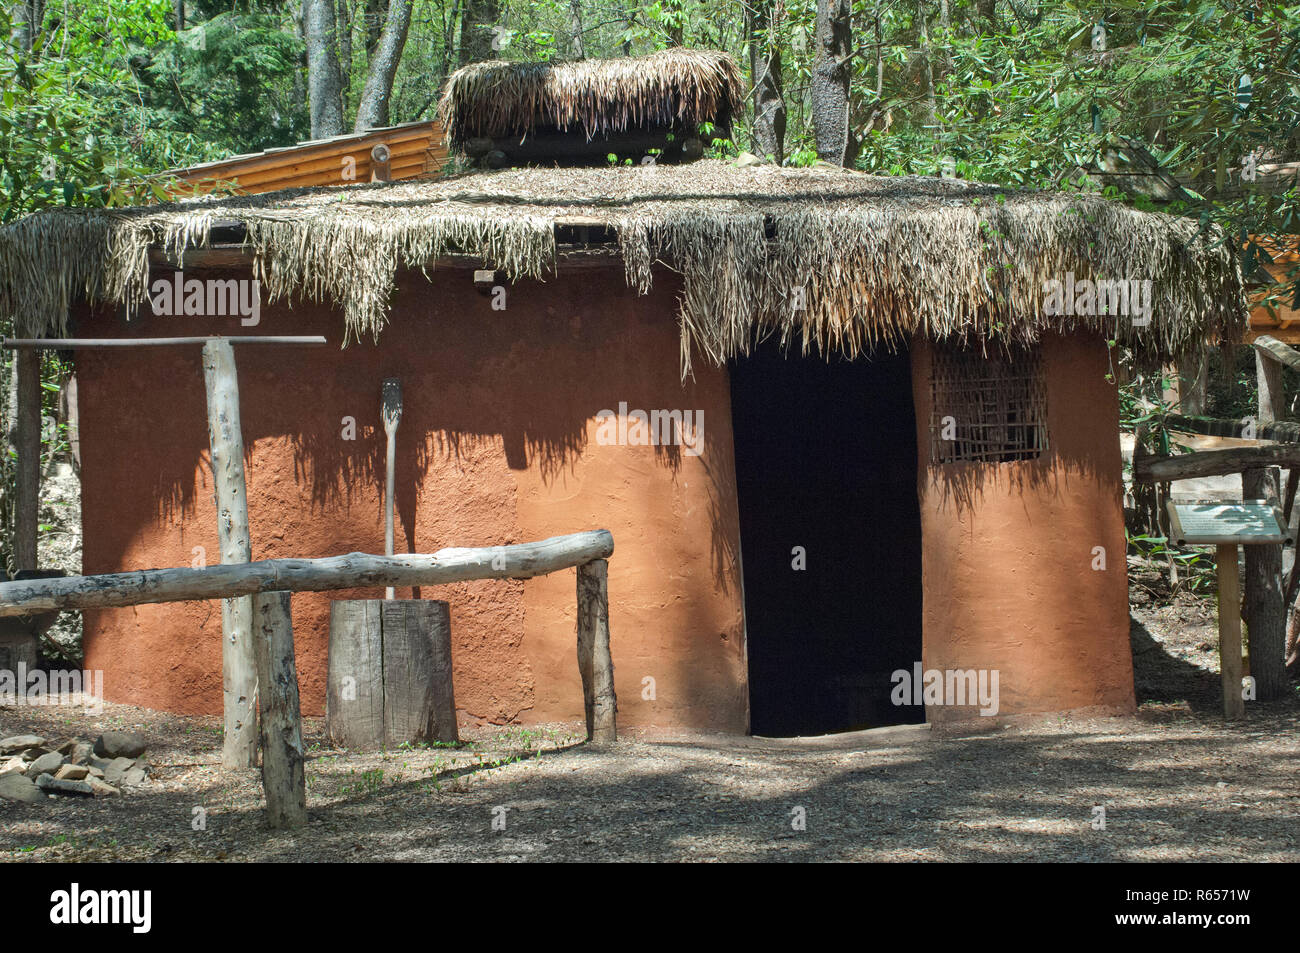 Traditional Cherokee home made with wattle and daub plaster over a pole frame, Oconaluftee Village, Qualla Reservation, North Carolina. Digital photog - Stock Image